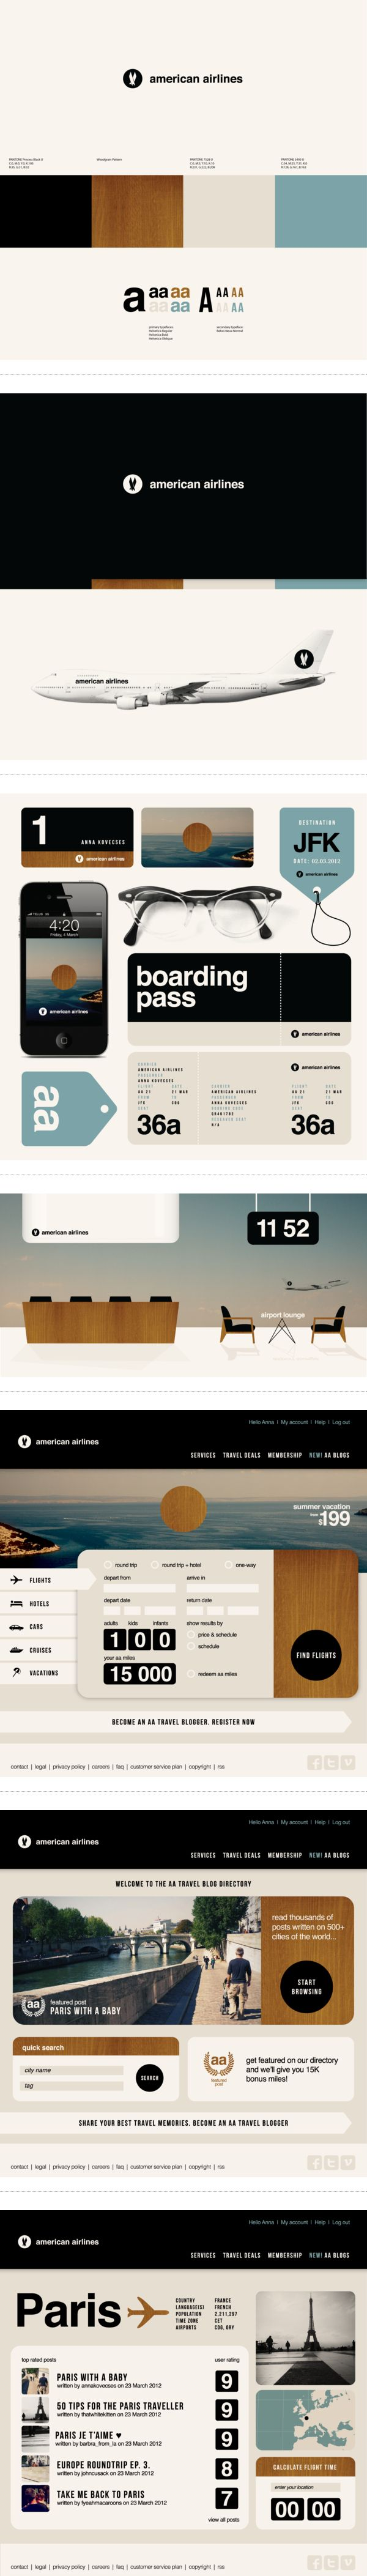 experimental american airlines identity / by anna kovecses #identity